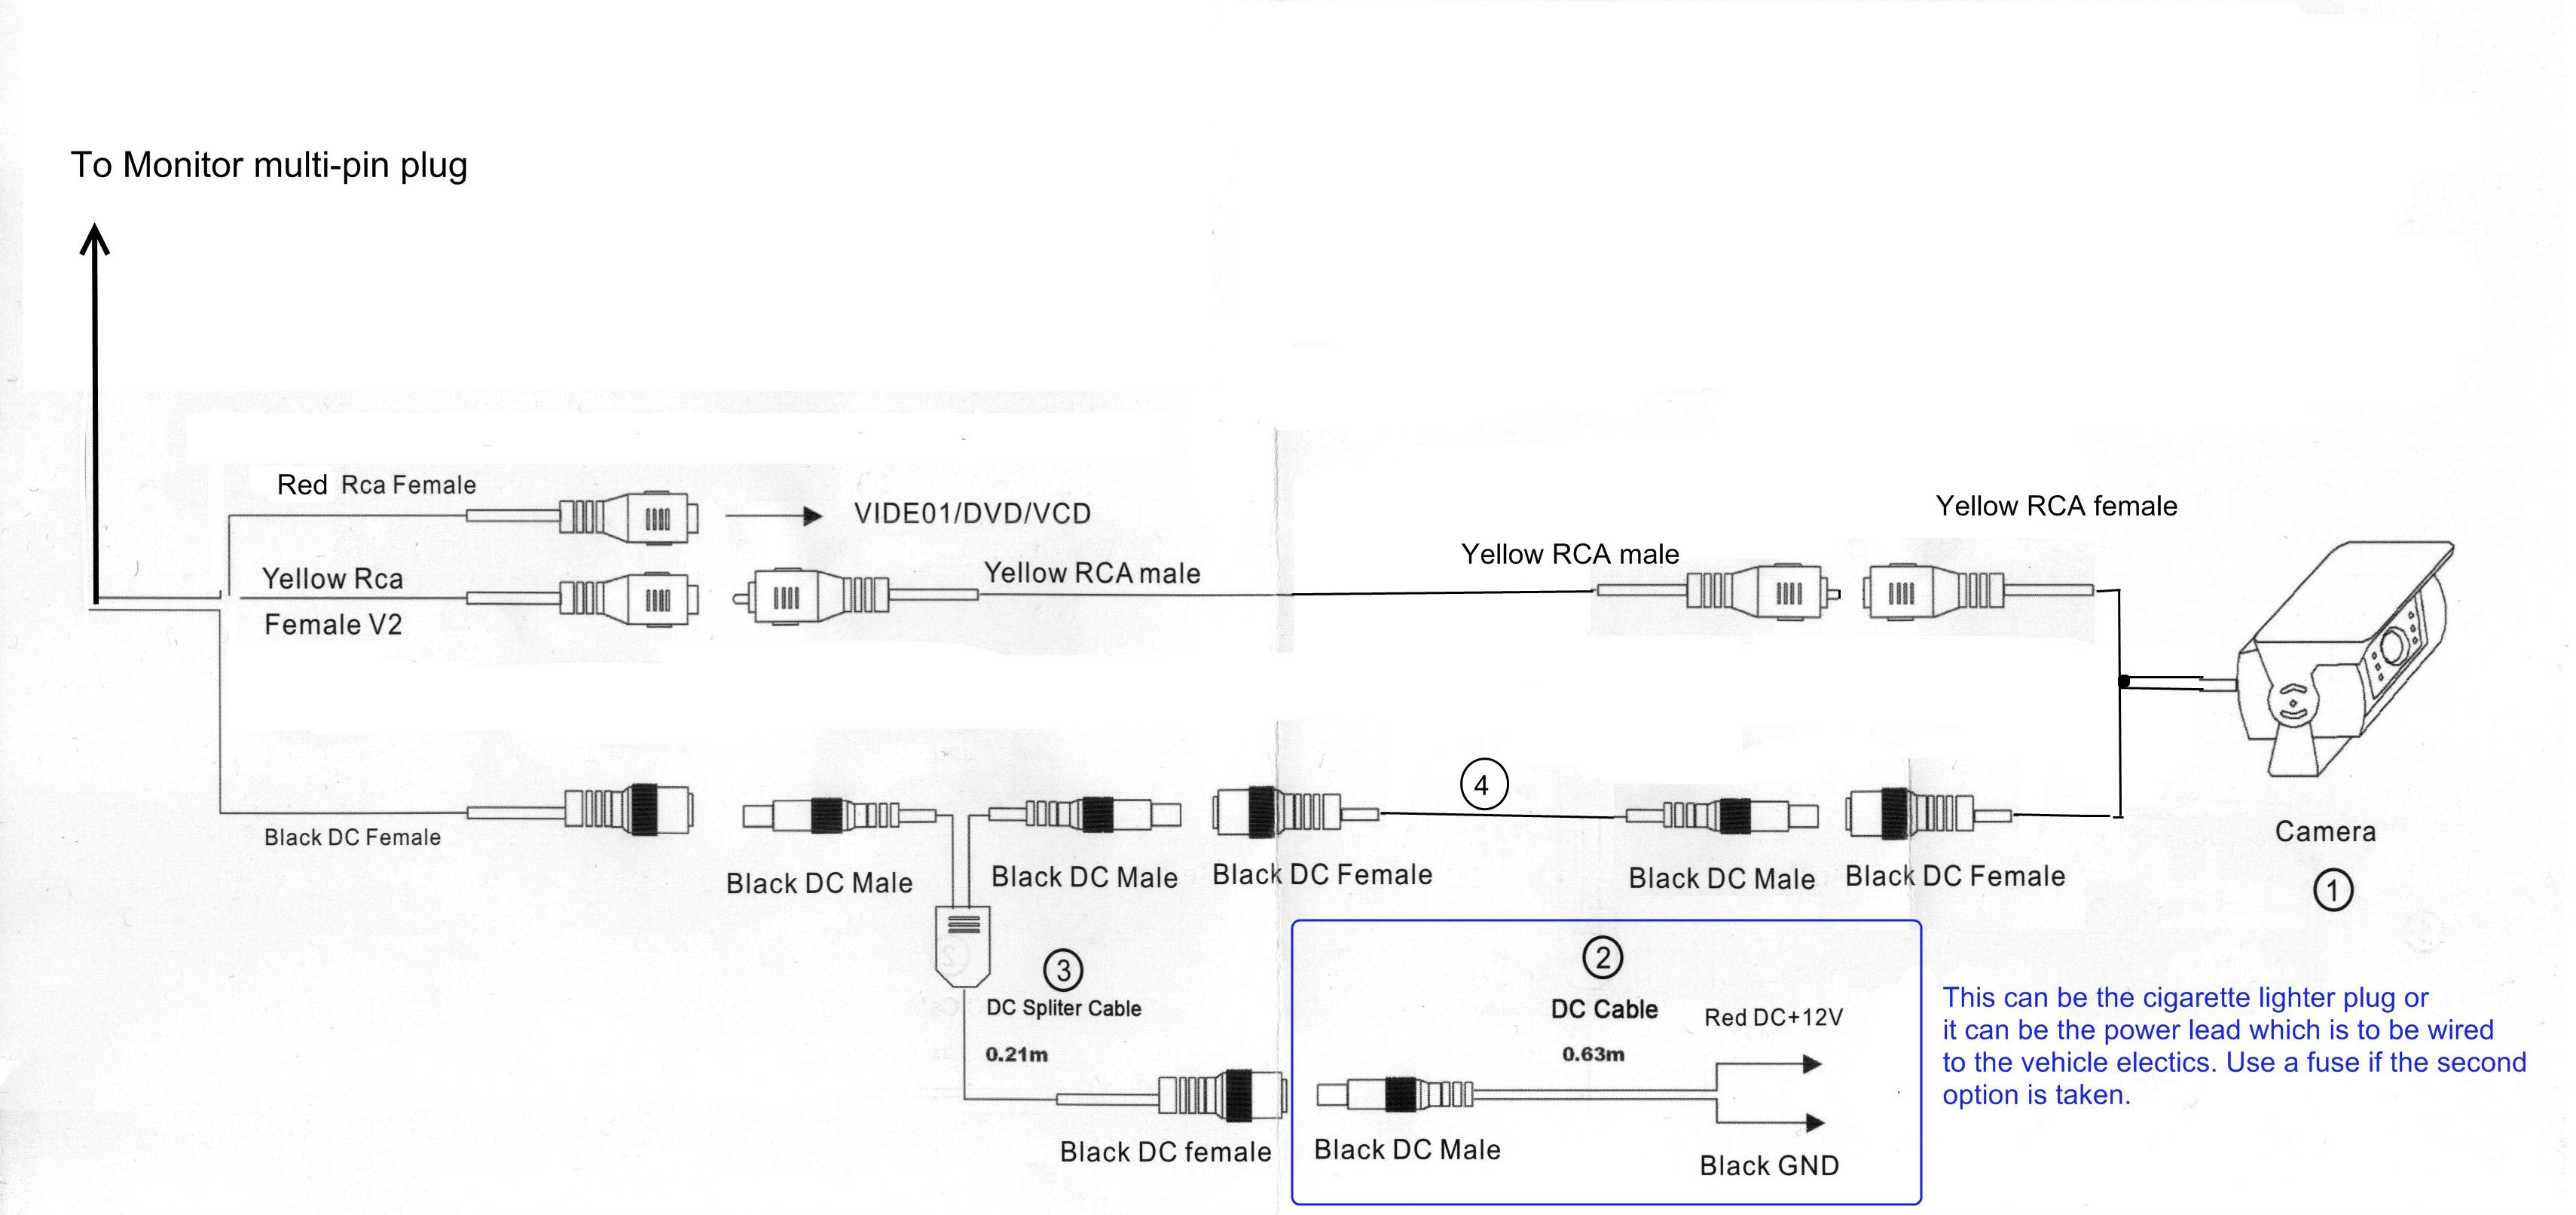 Reverse Light Wiring Diagram For F150 | Wiring Library - Ford F150 Backup Camera Wiring Diagram